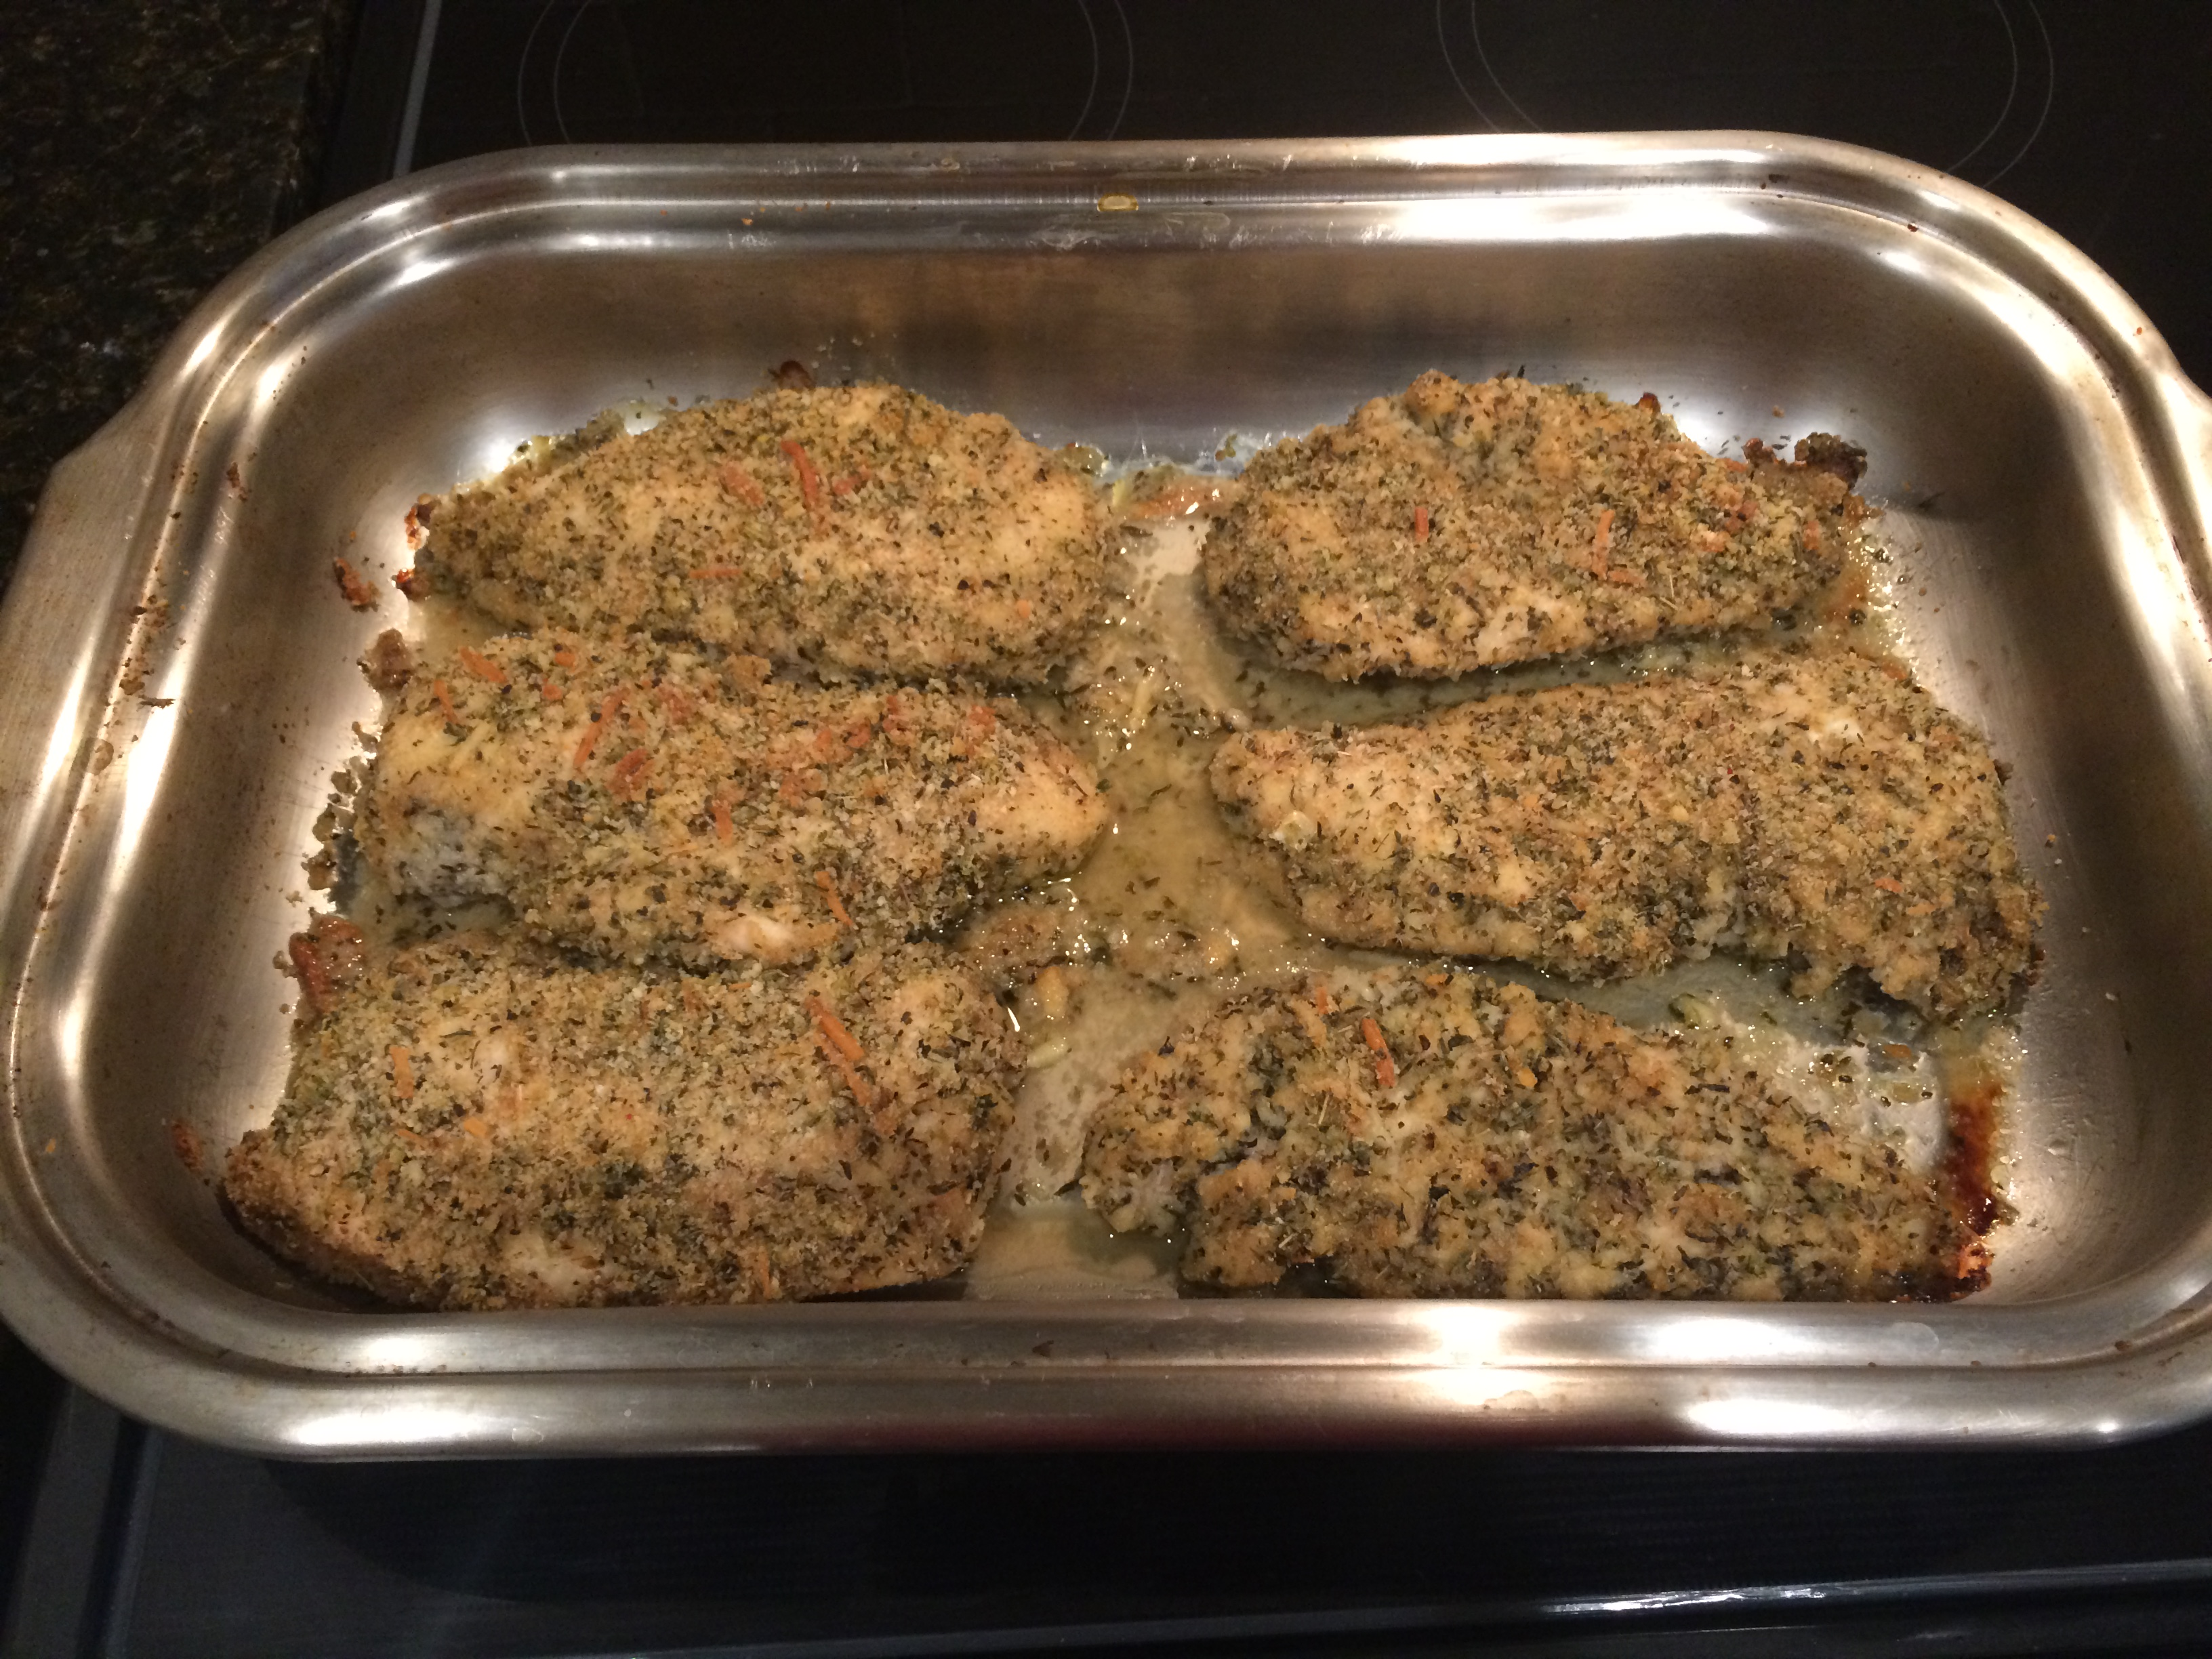 Baked Parmesan-Crusted Chicken Danny Battis